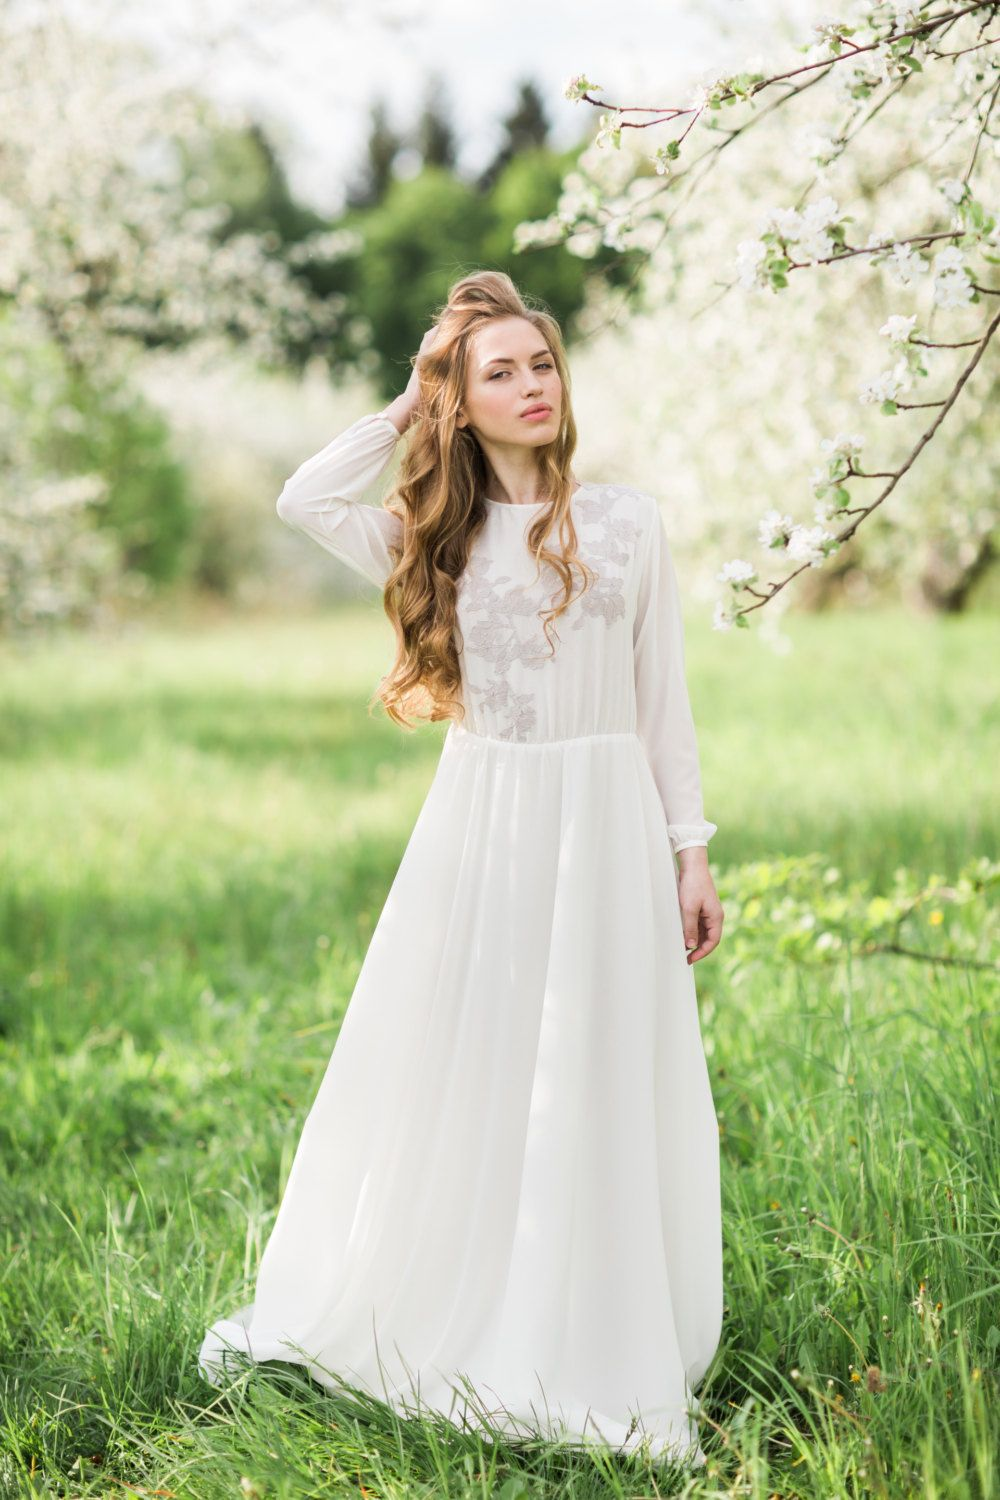 Offwhite long sleeve wedding dress with lavender lace appliques